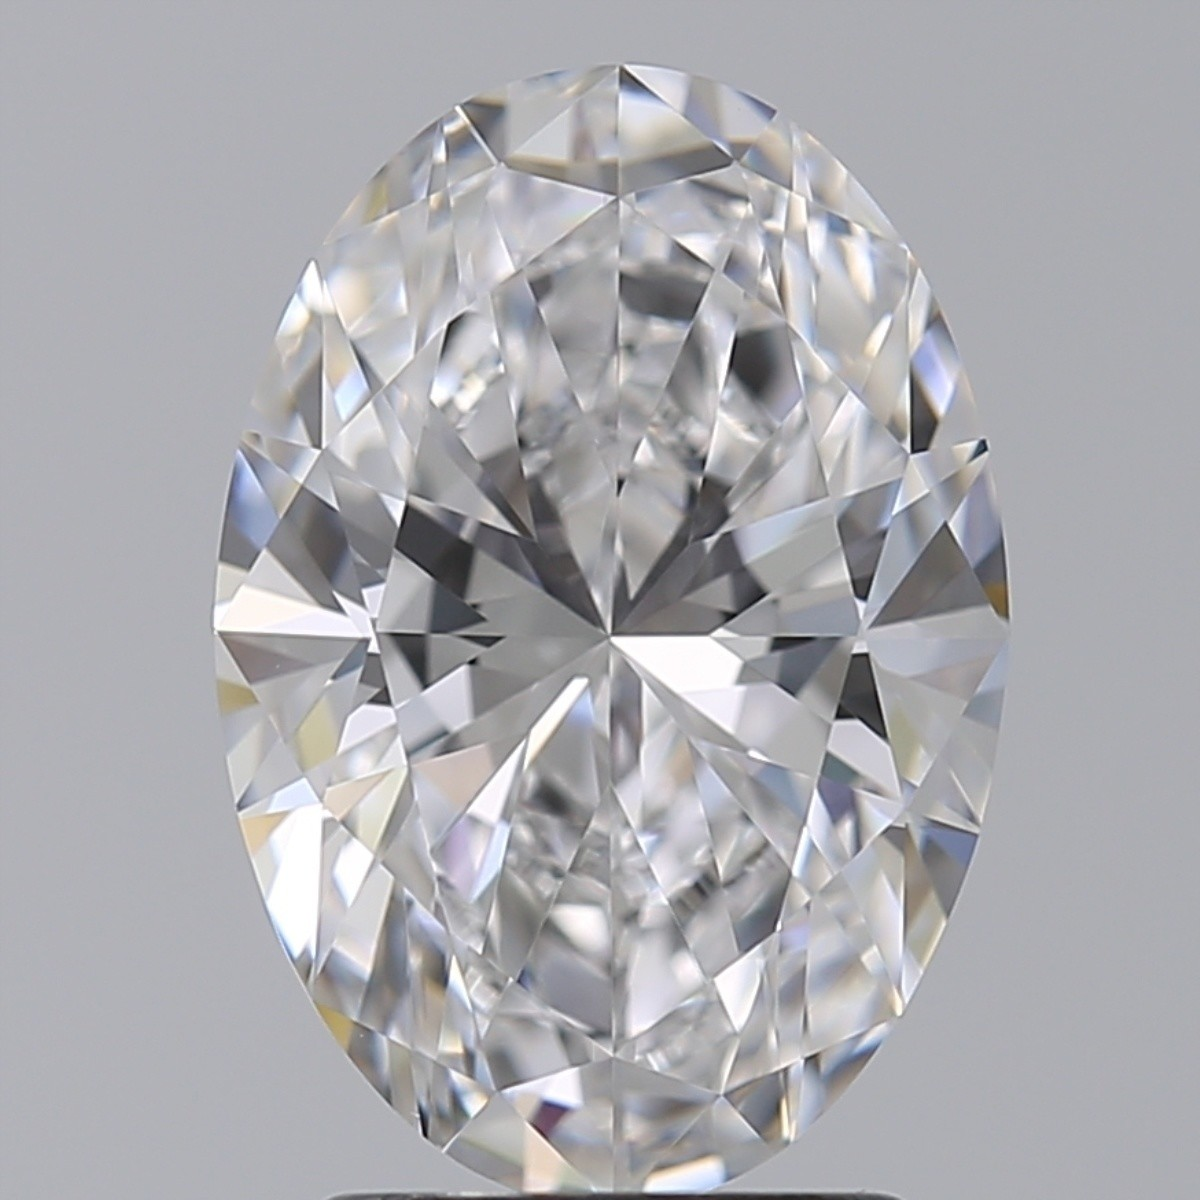 2.43 Carat Oval Diamond (D/FL)